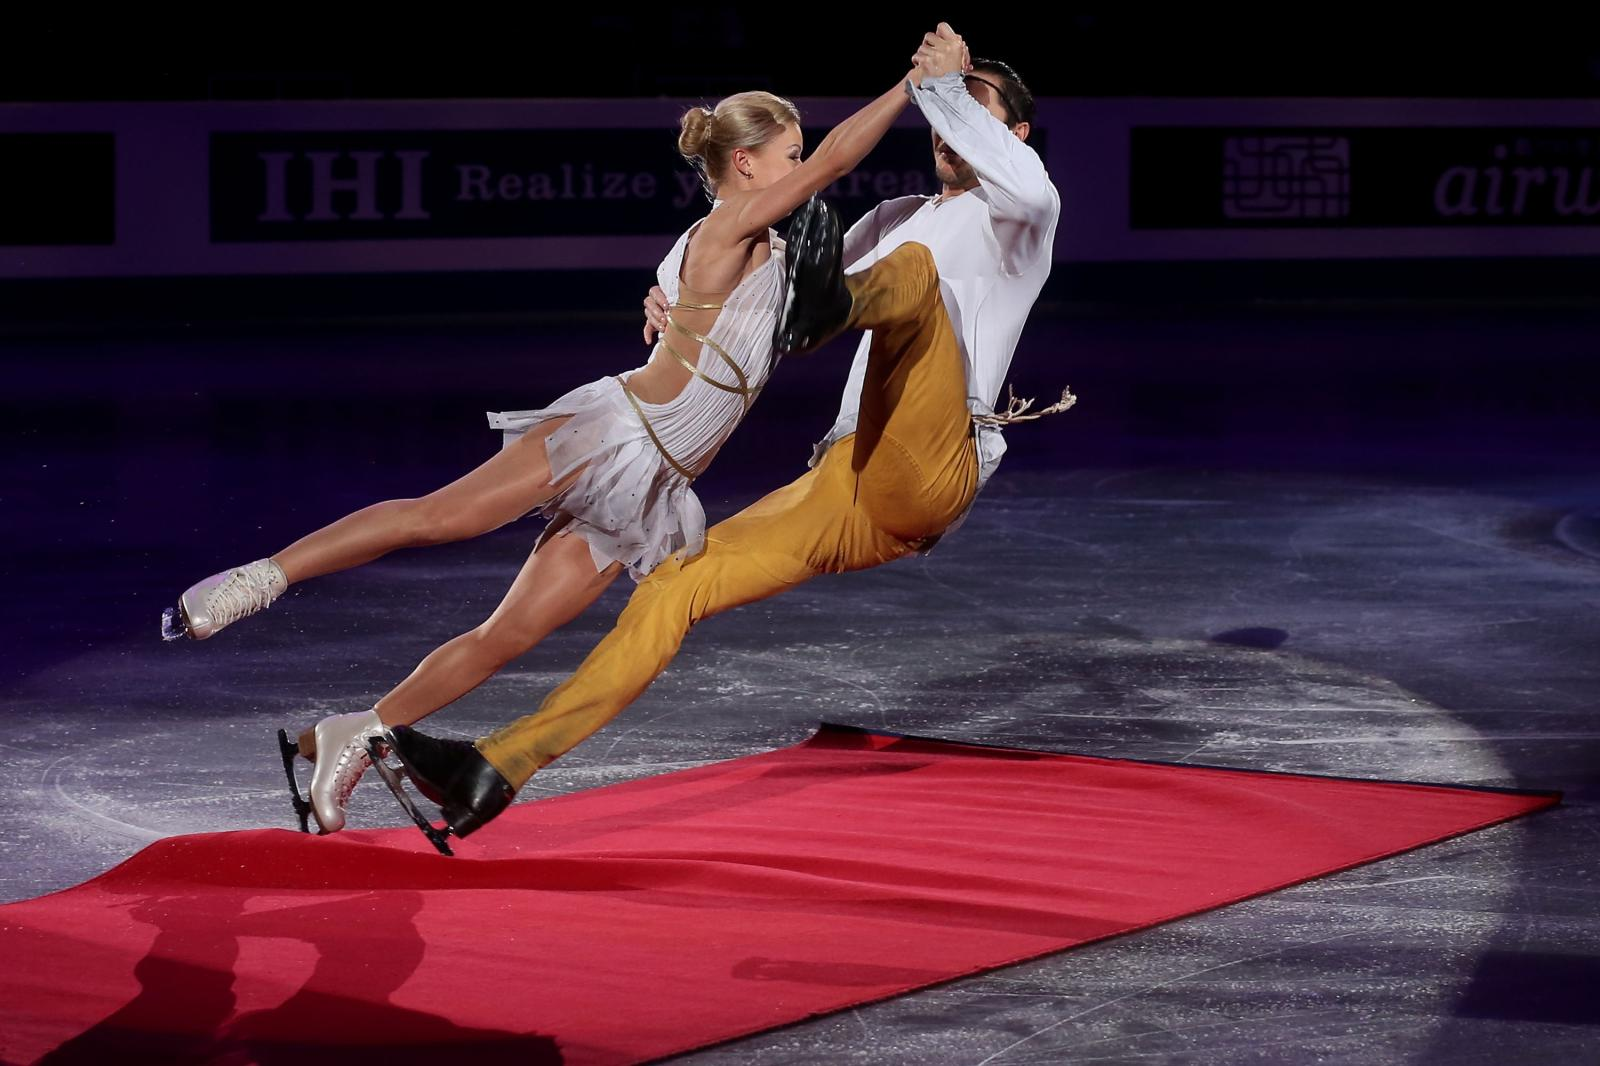 Davis and white skaters dating 1